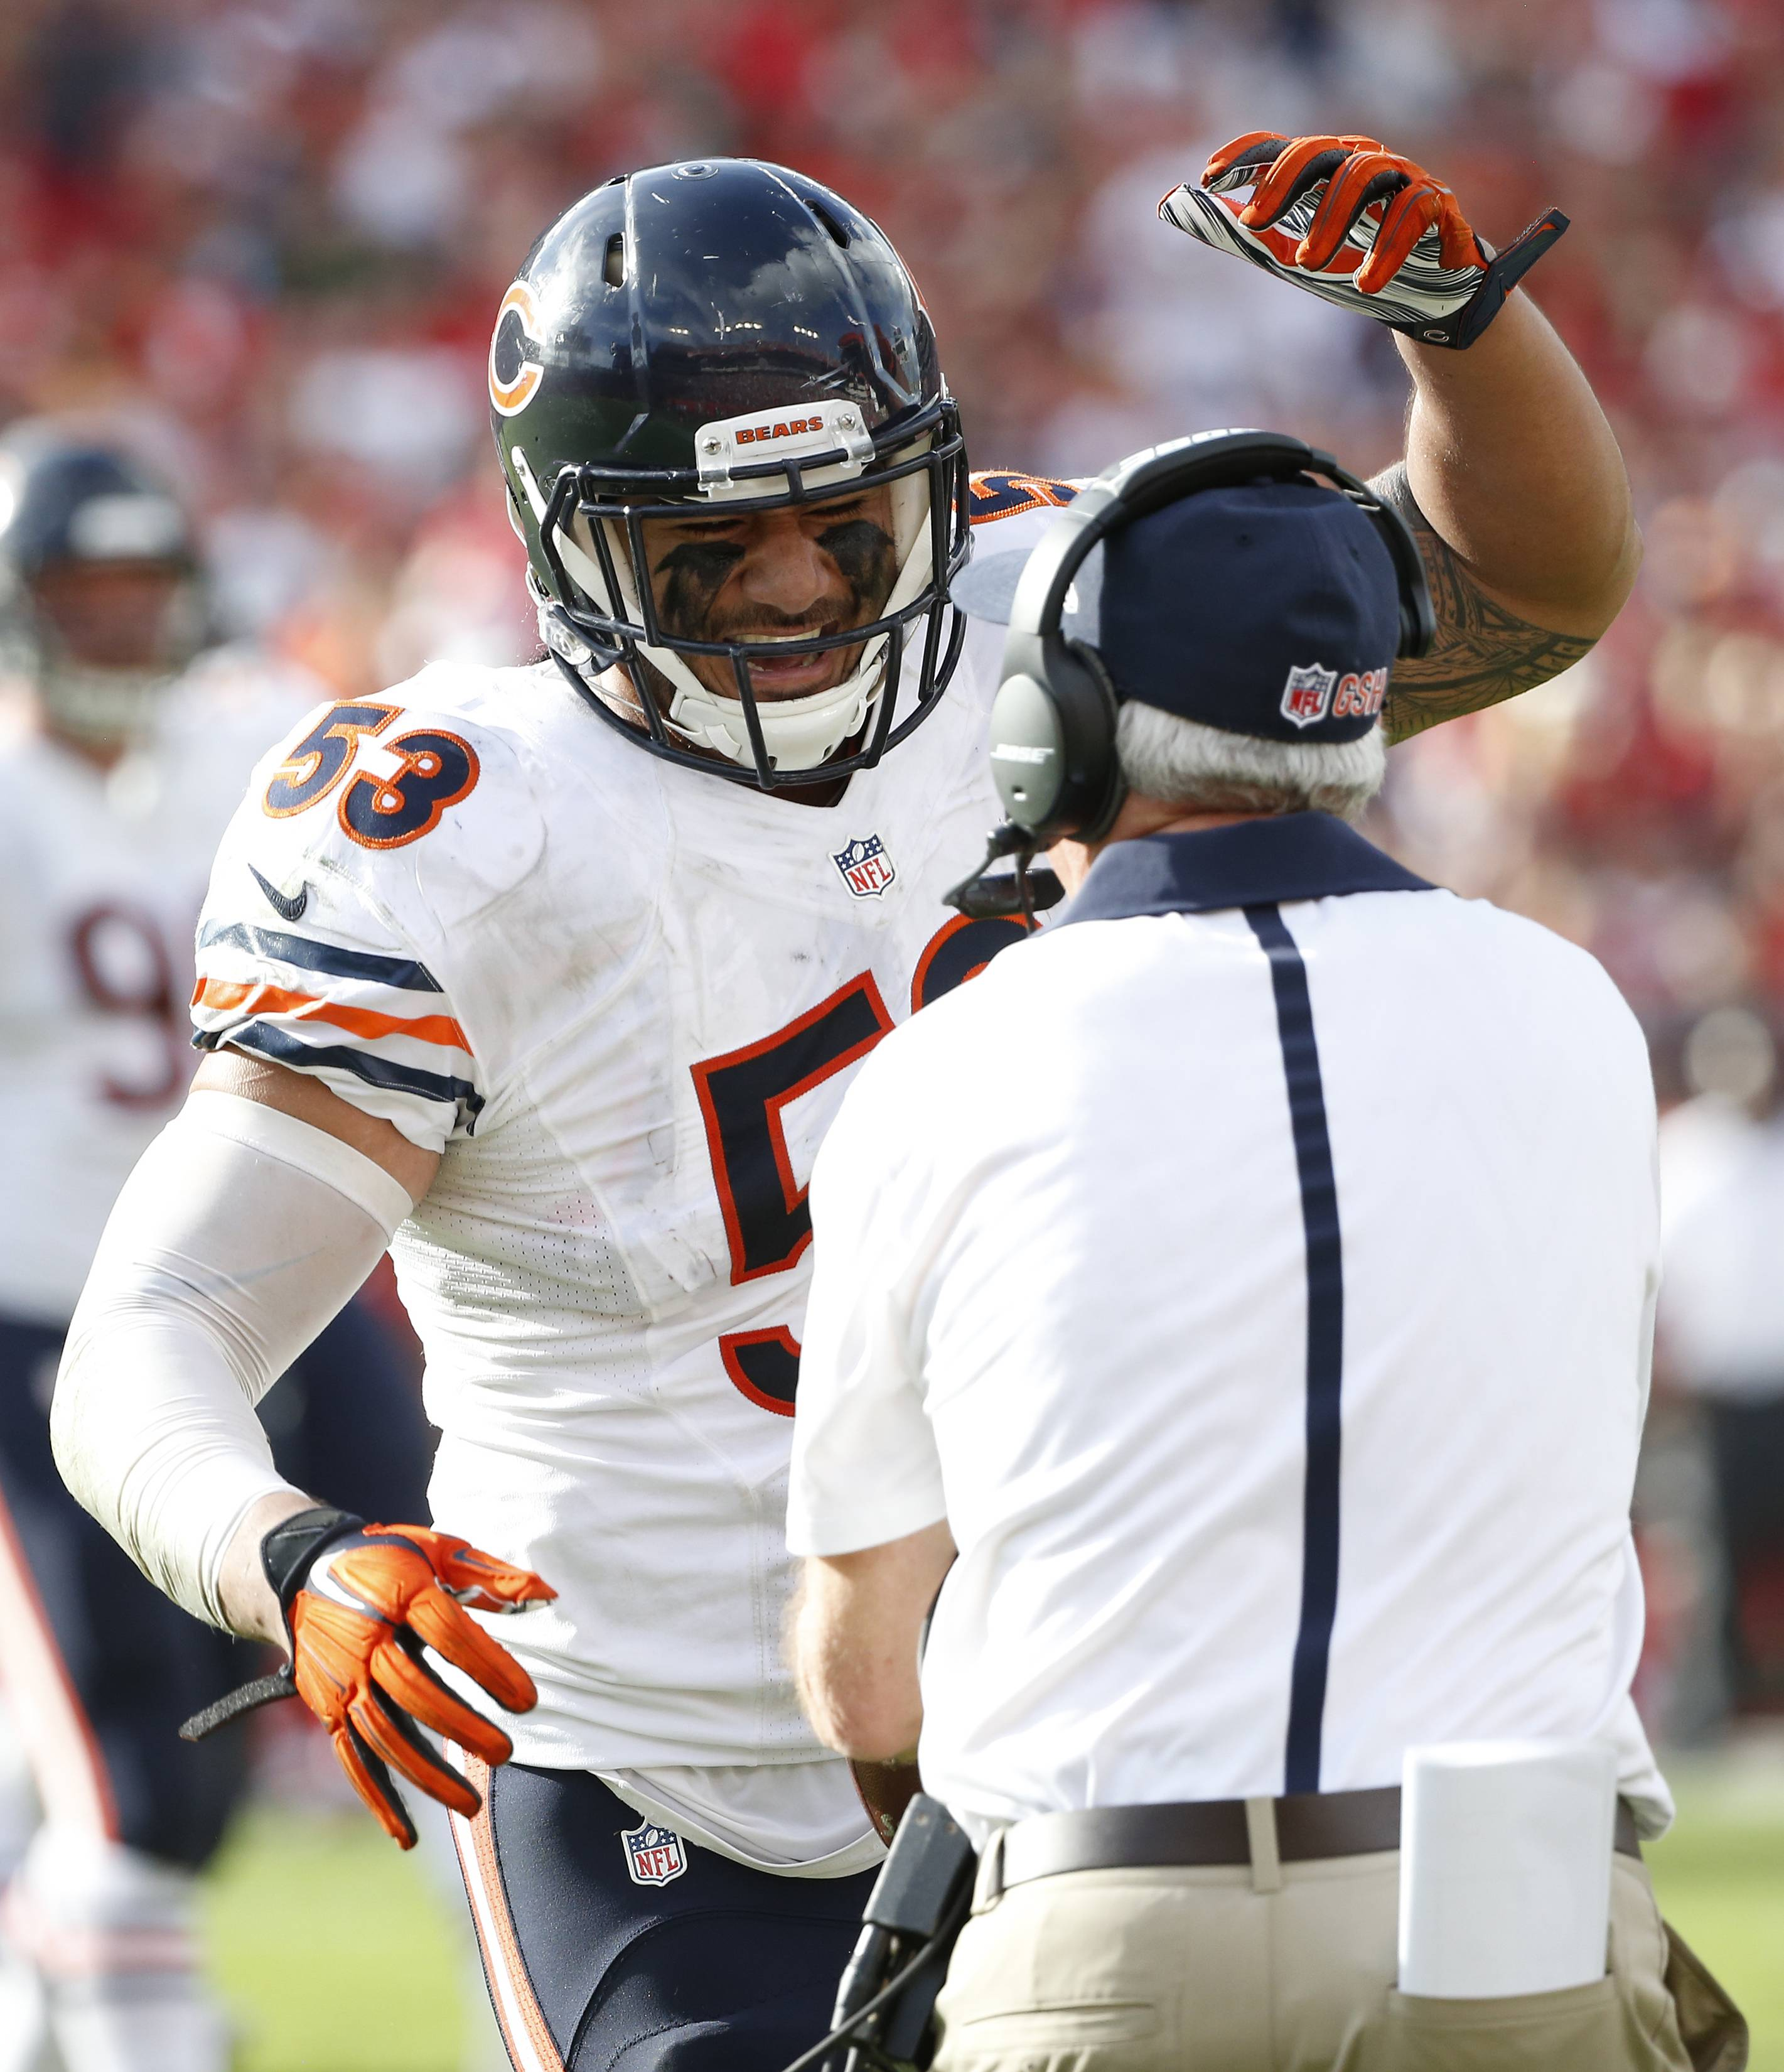 Bears linebacker John Timu celebrates with head coach John Fox after recovering a fumble by Buccaneers running back Doug Martin during the third quarter of Sunday's game in Tampa.